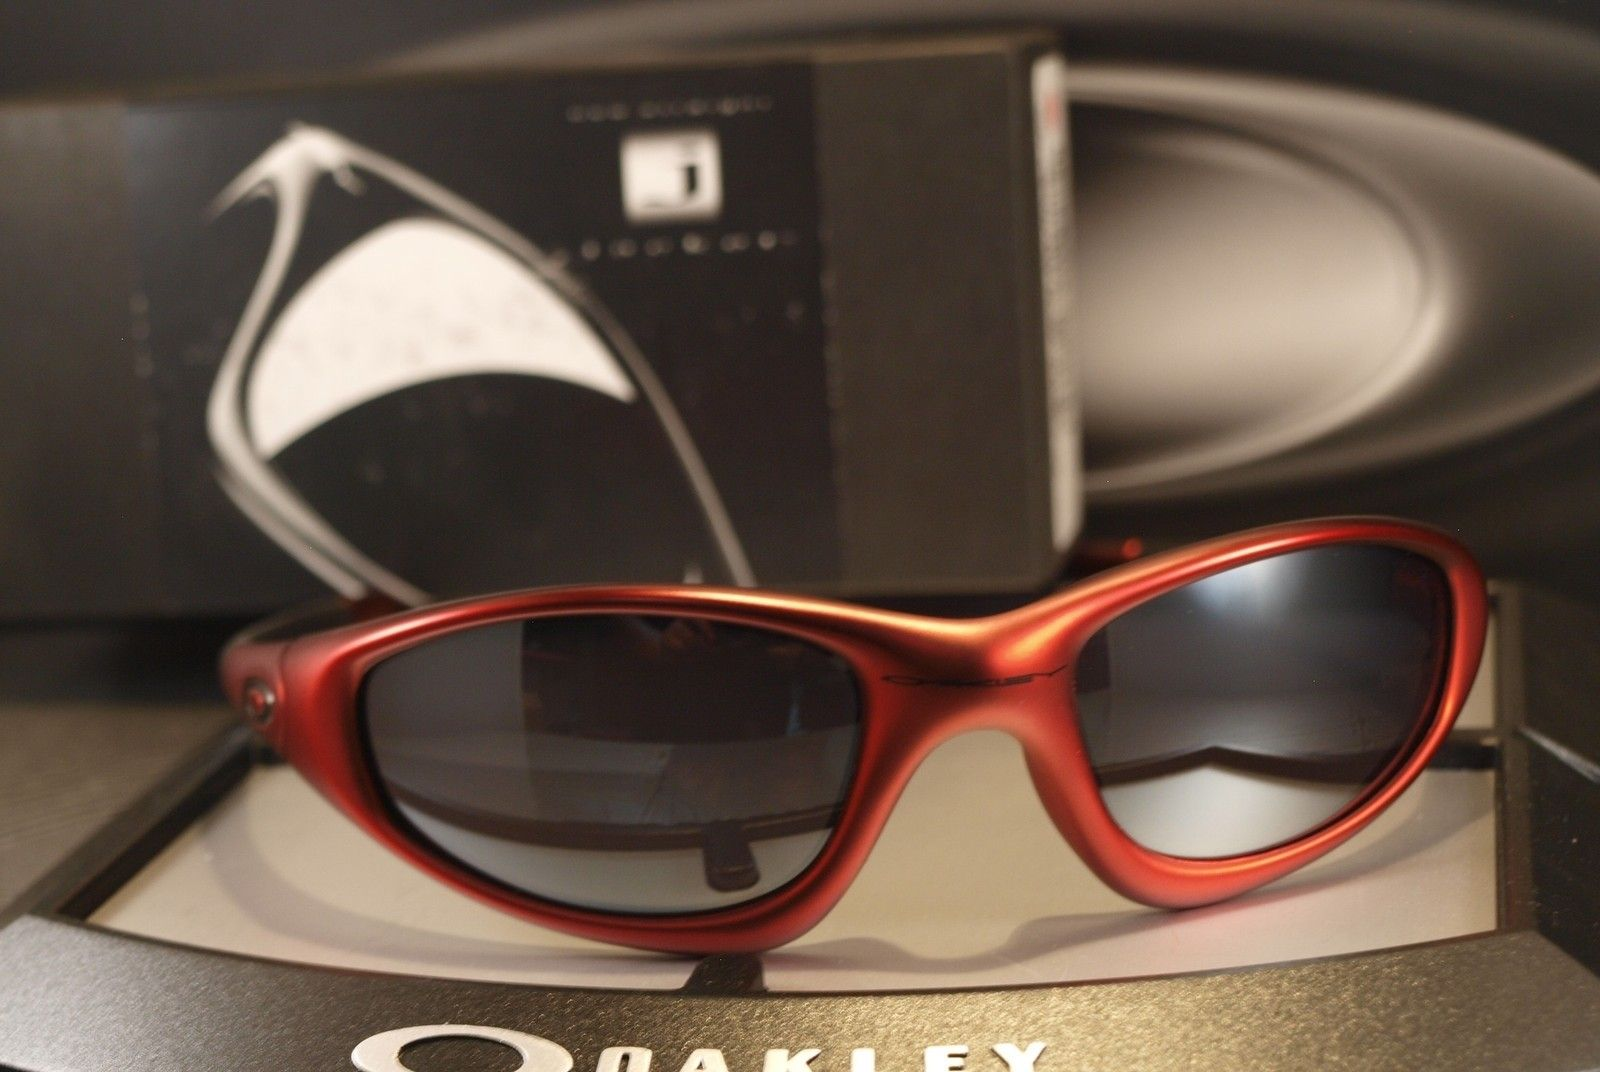 FS: OAKLEY New Straight Jacket ? RARE 04-268 ? BNIB ? Vintage ? FMJ Red ? - newstraightjktfmjred.jpg